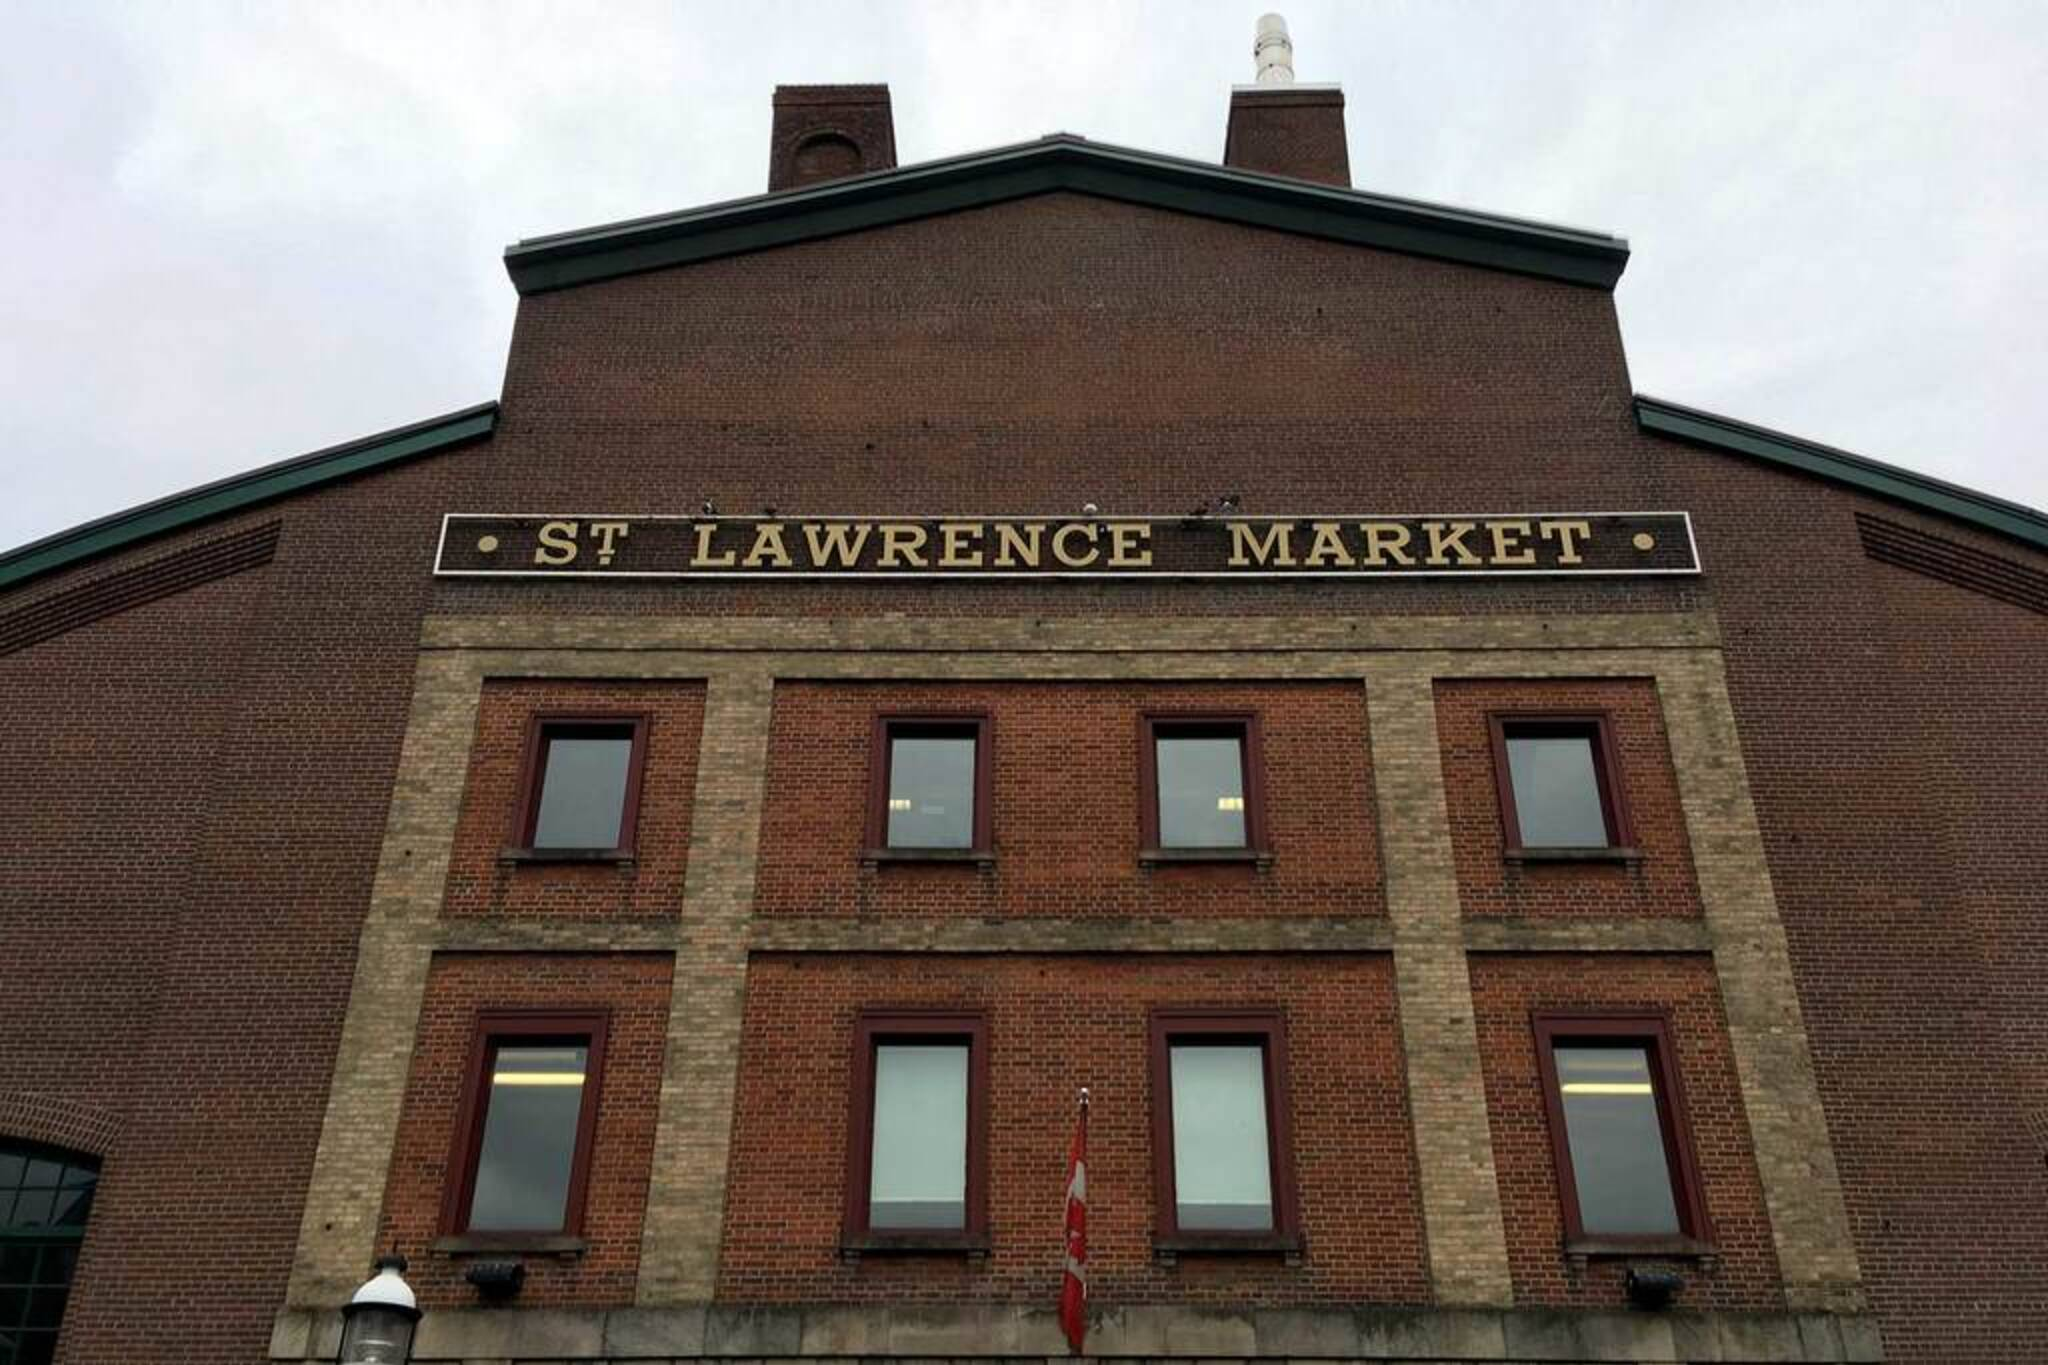 st Lawrence evening market